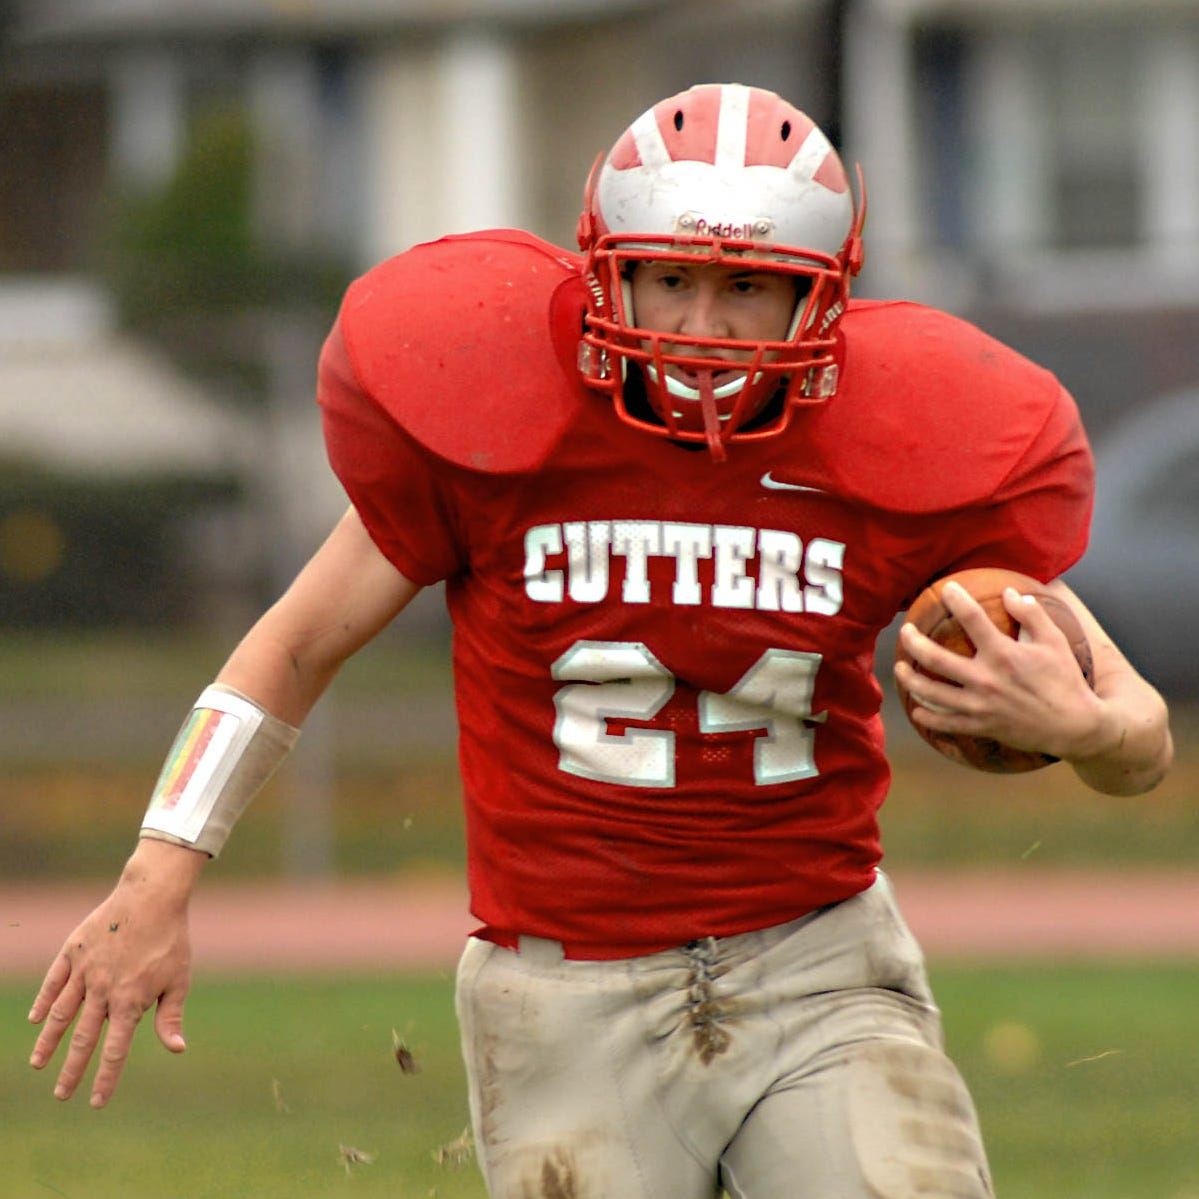 Fair Lawn running back Jim Hegybeli scores a touchdown during a 2009 playoff game. Fair Lawn's teams are called the Cutters.